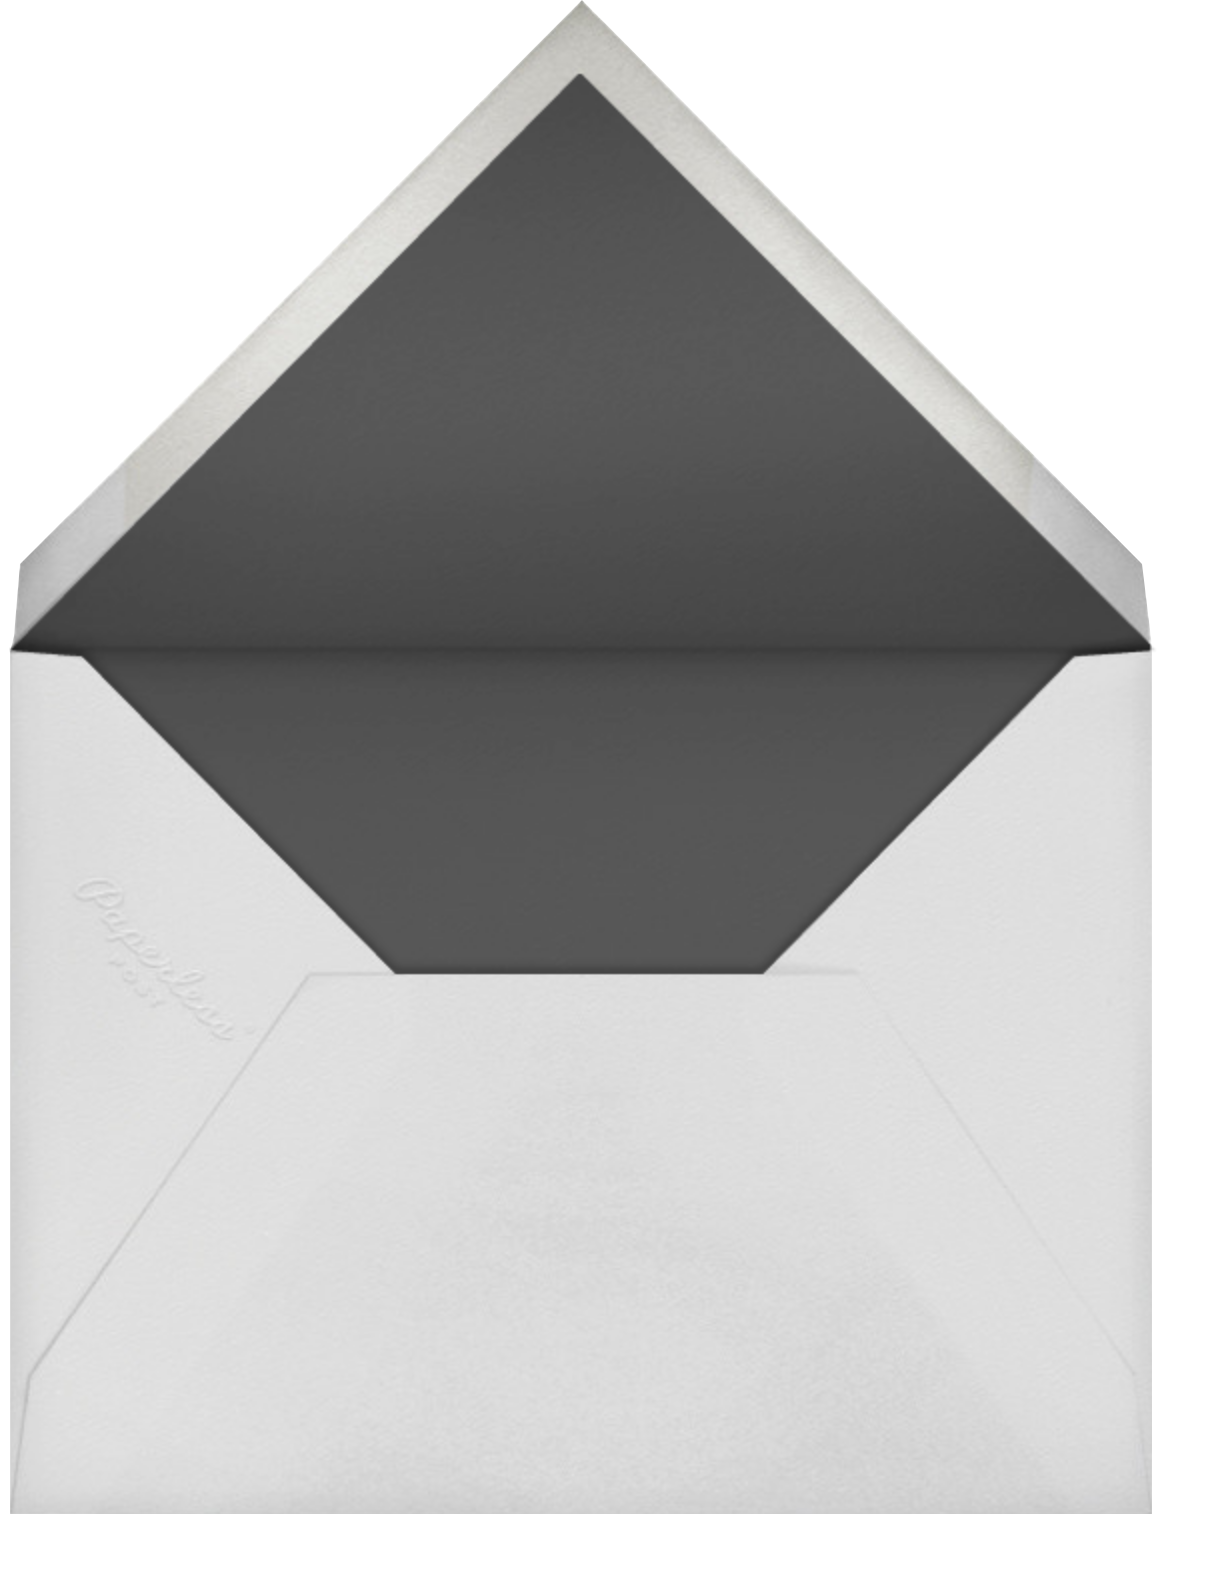 Louisa I (Thank You) - Taupe - Paperless Post - Personalized stationery - envelope back